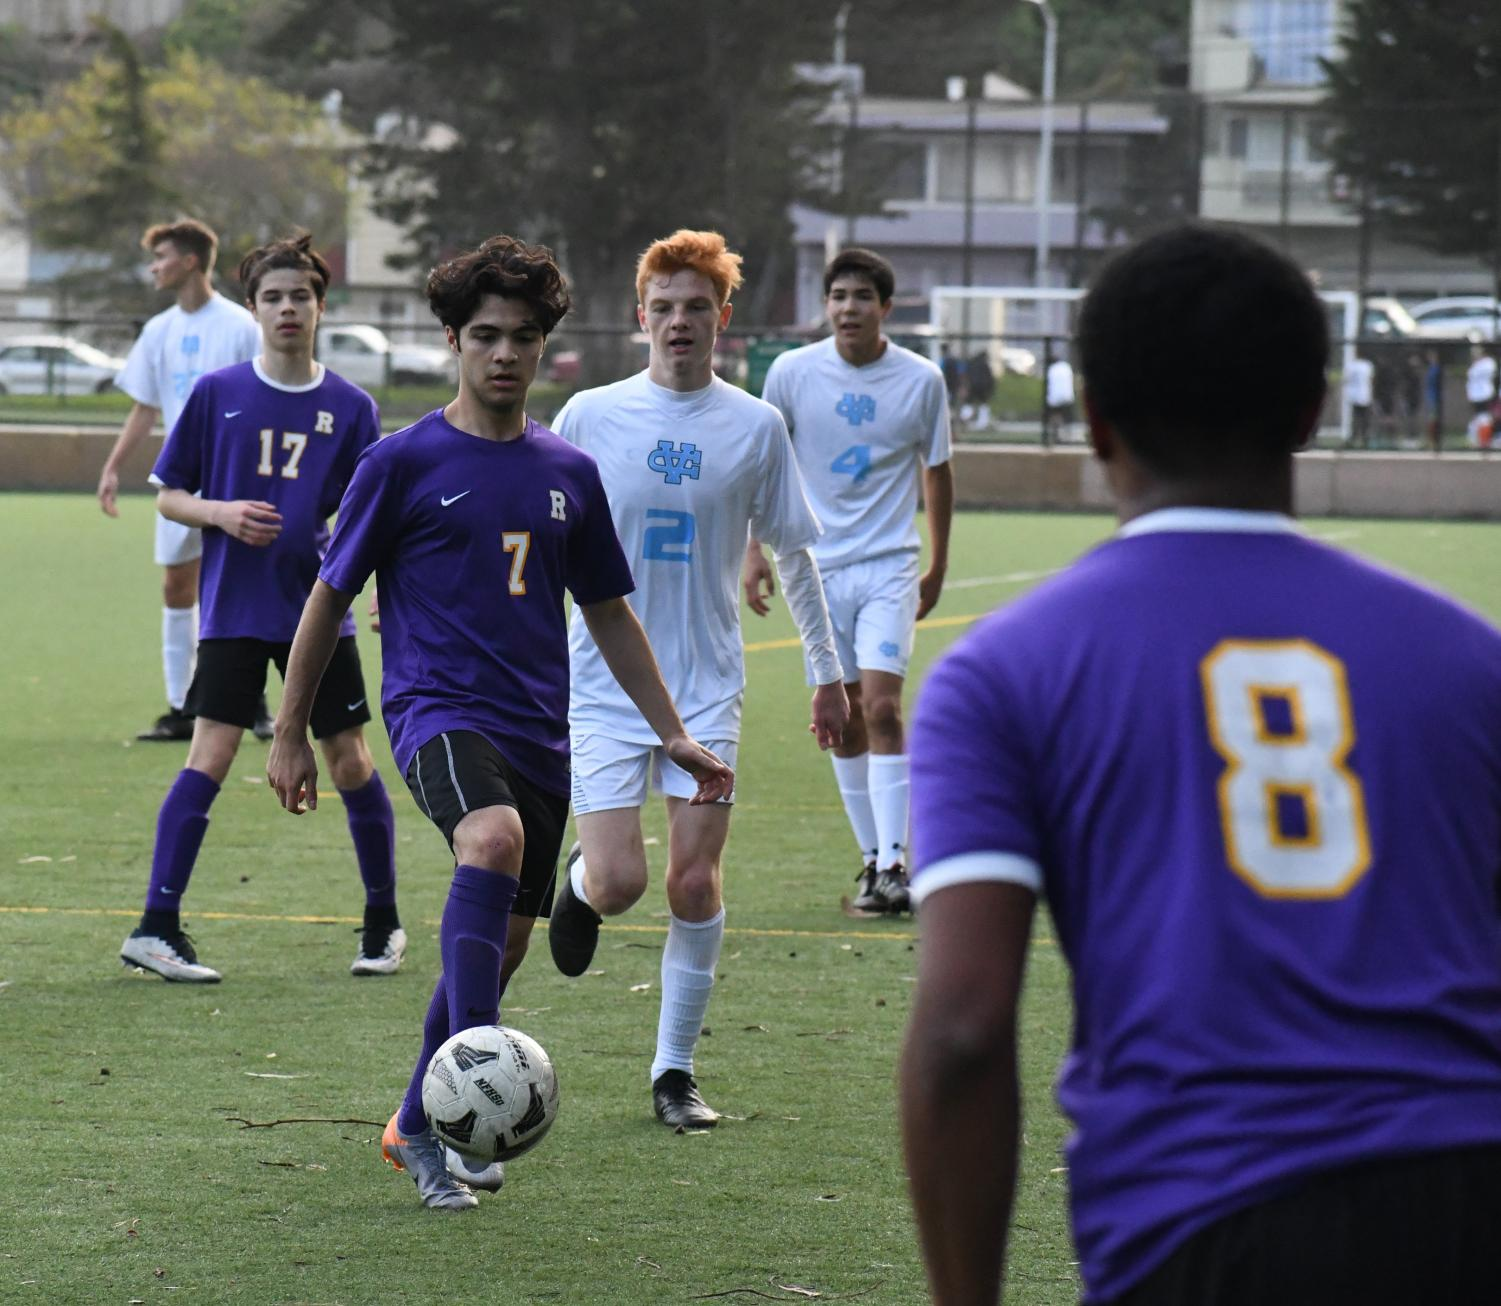 Max Gomez '19 dribbles the ball downfield in a game against Valley Christian